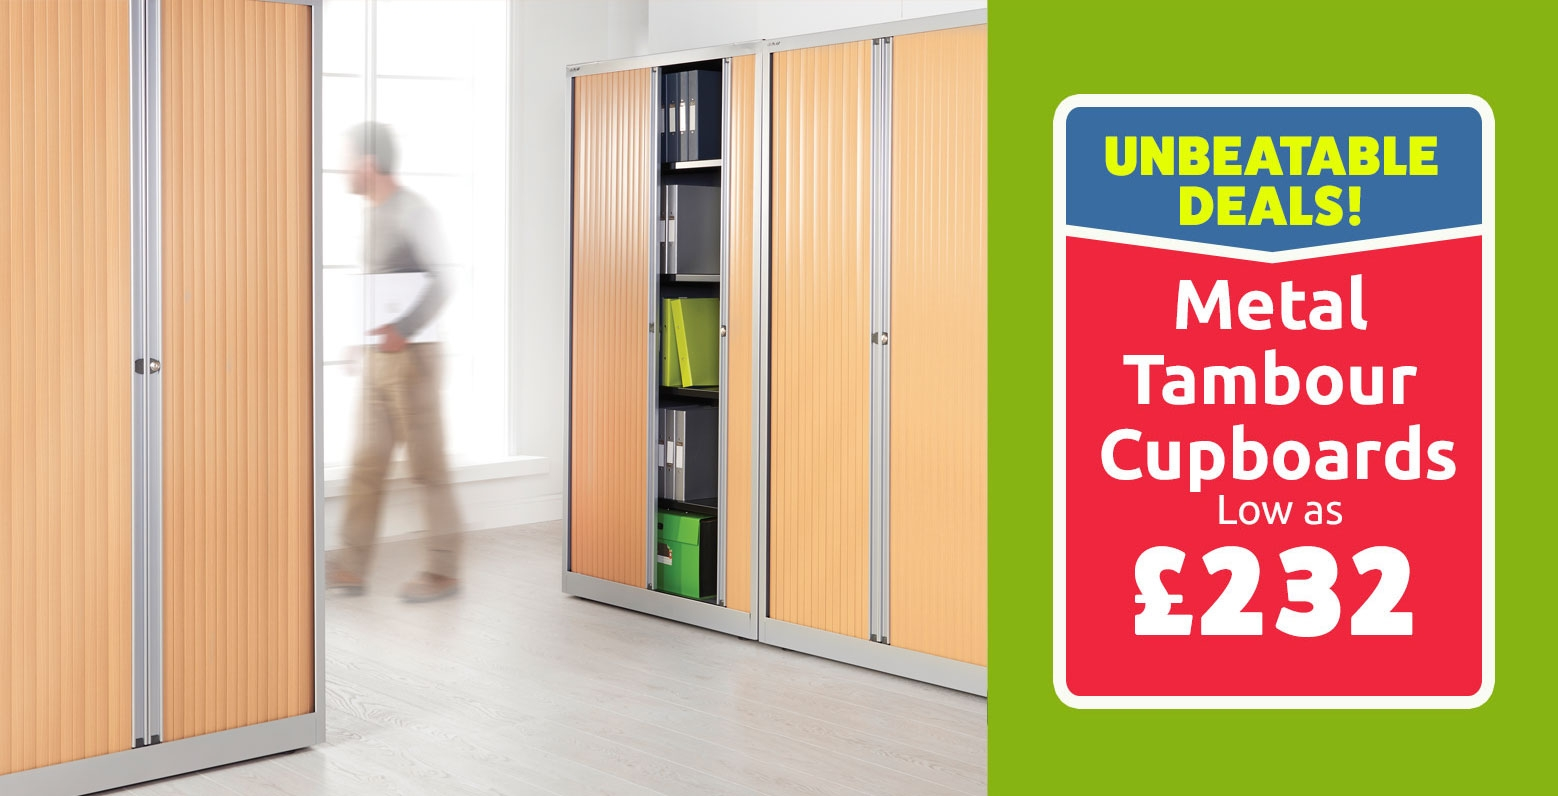 Metal Tambour Cupboards